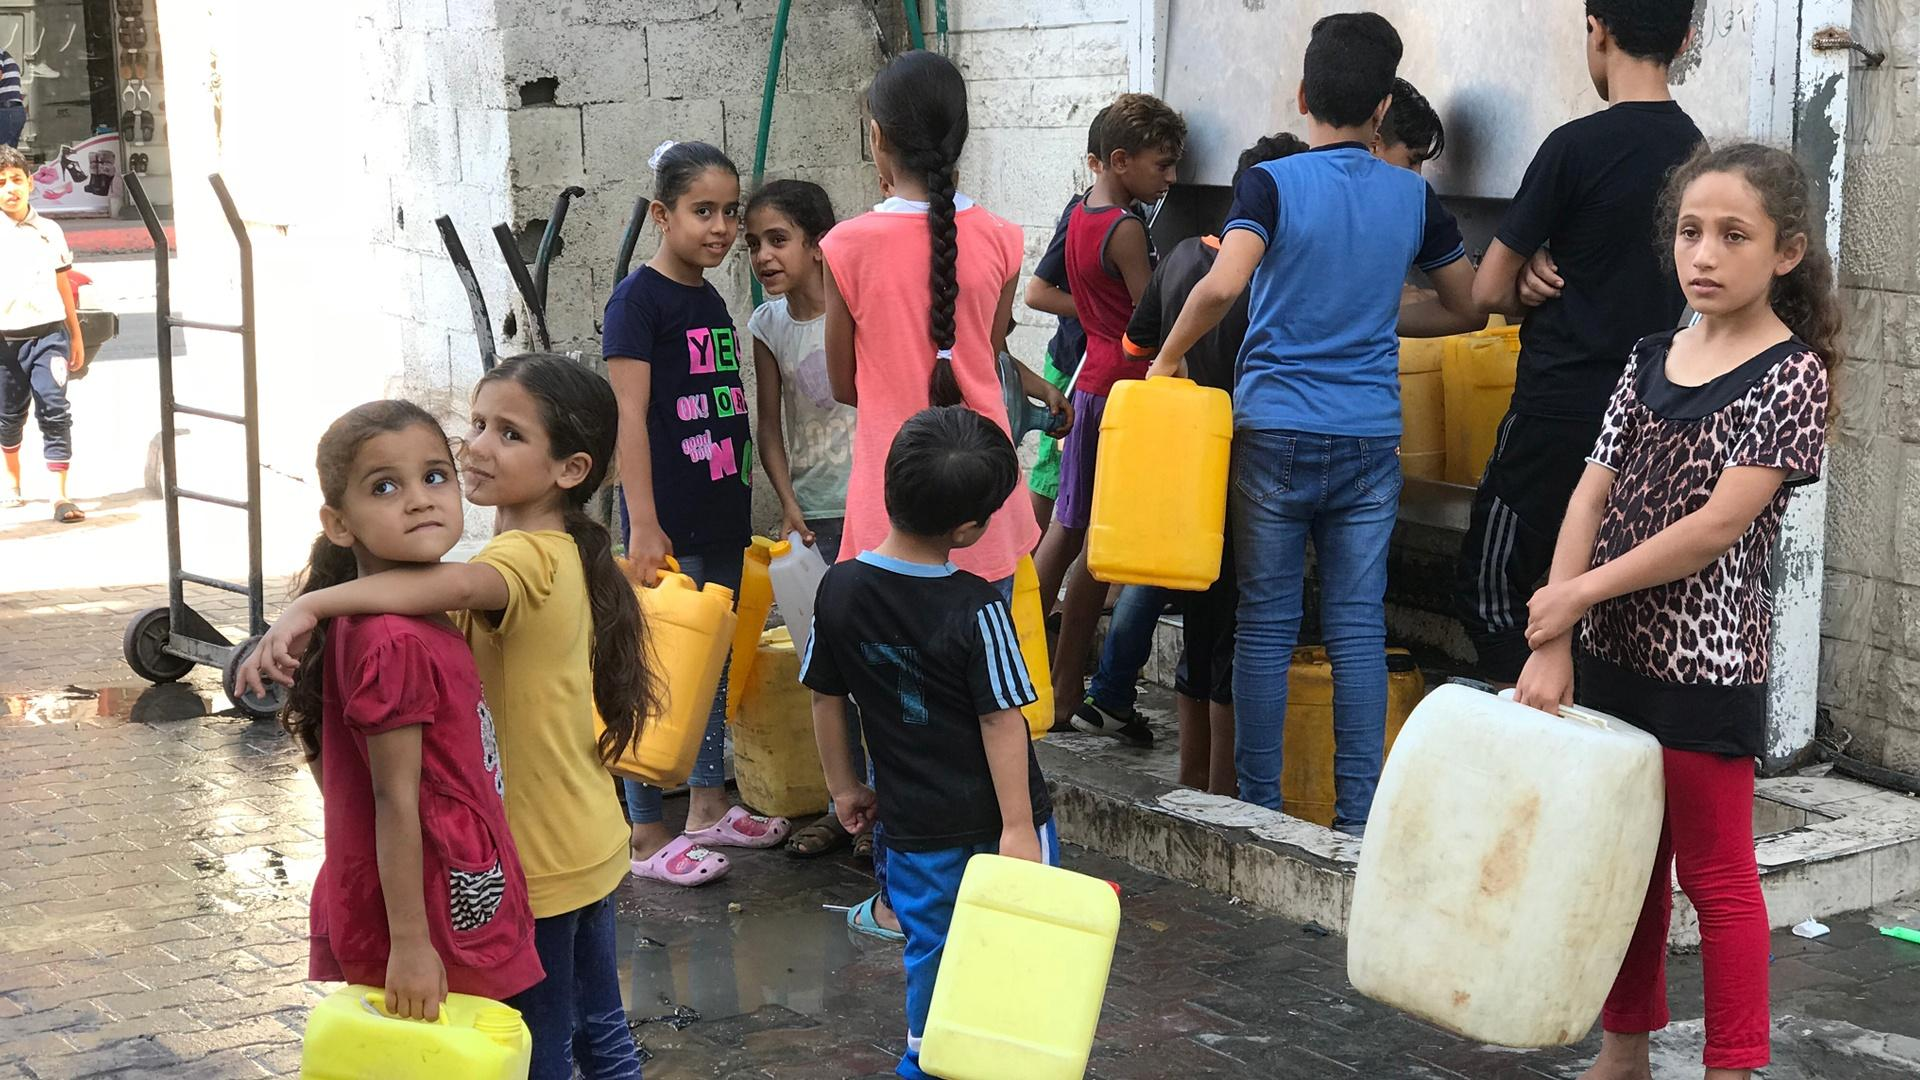 In Gaza, children line up to collect water. It's not unusual for Gaza residents to go a lifetime without ever meeting someone who has a 24-hour water supply.